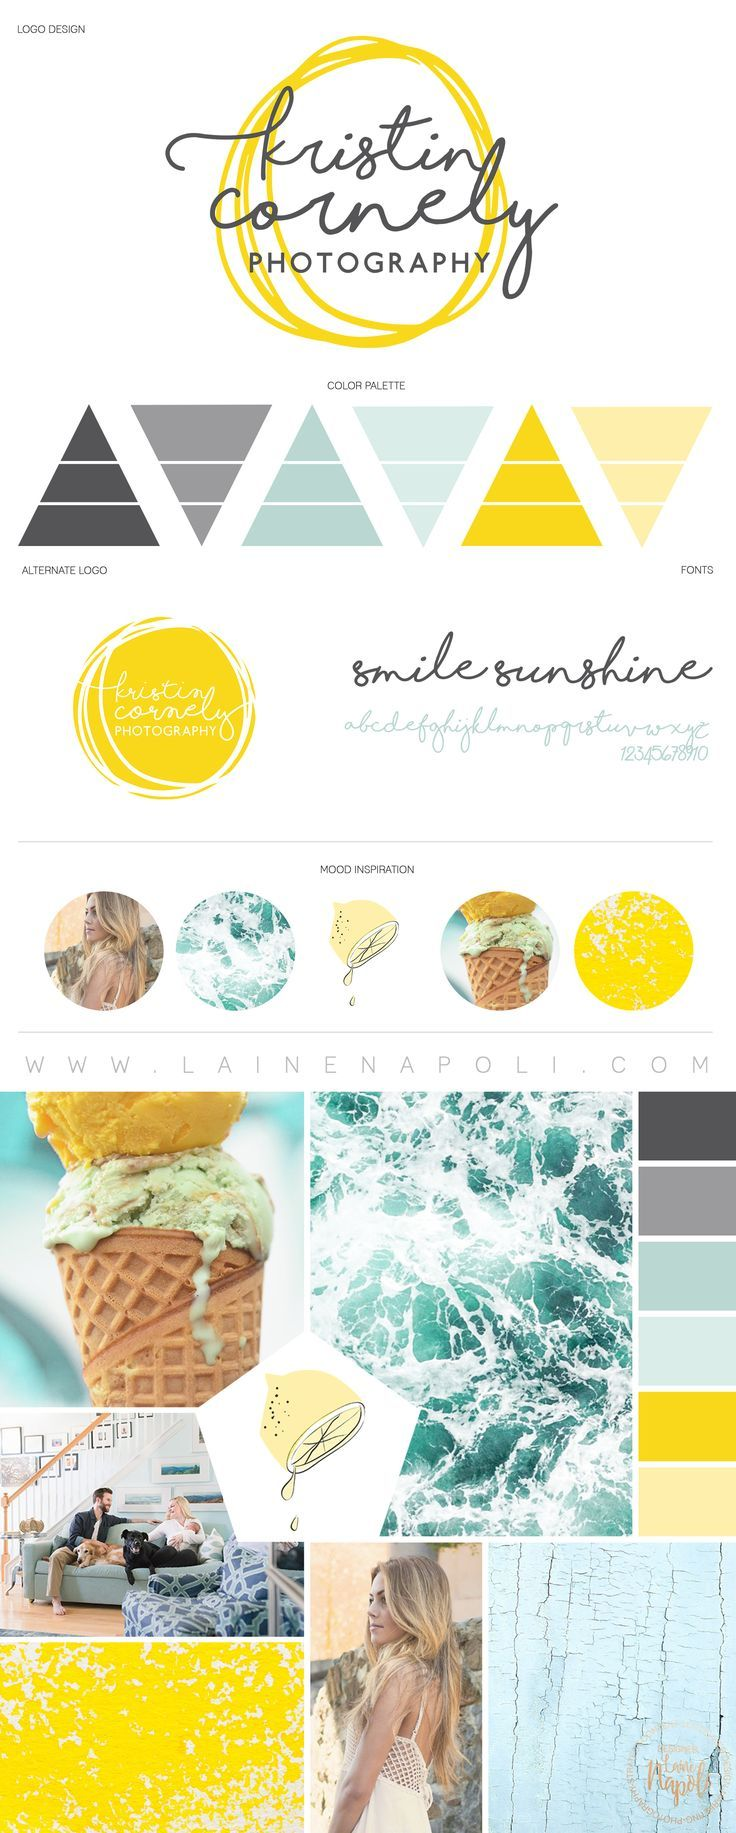 New launch from the Branding Studio. Kristin Cornely Photography. Sunshine Yellow, Grey, Light Blue, mood board with a touch of pure hapiness. Logo Design. Hand Drawn Sunshine Design. Photography Branding. Laine Napoli Branding http://www.lainenapoli.com